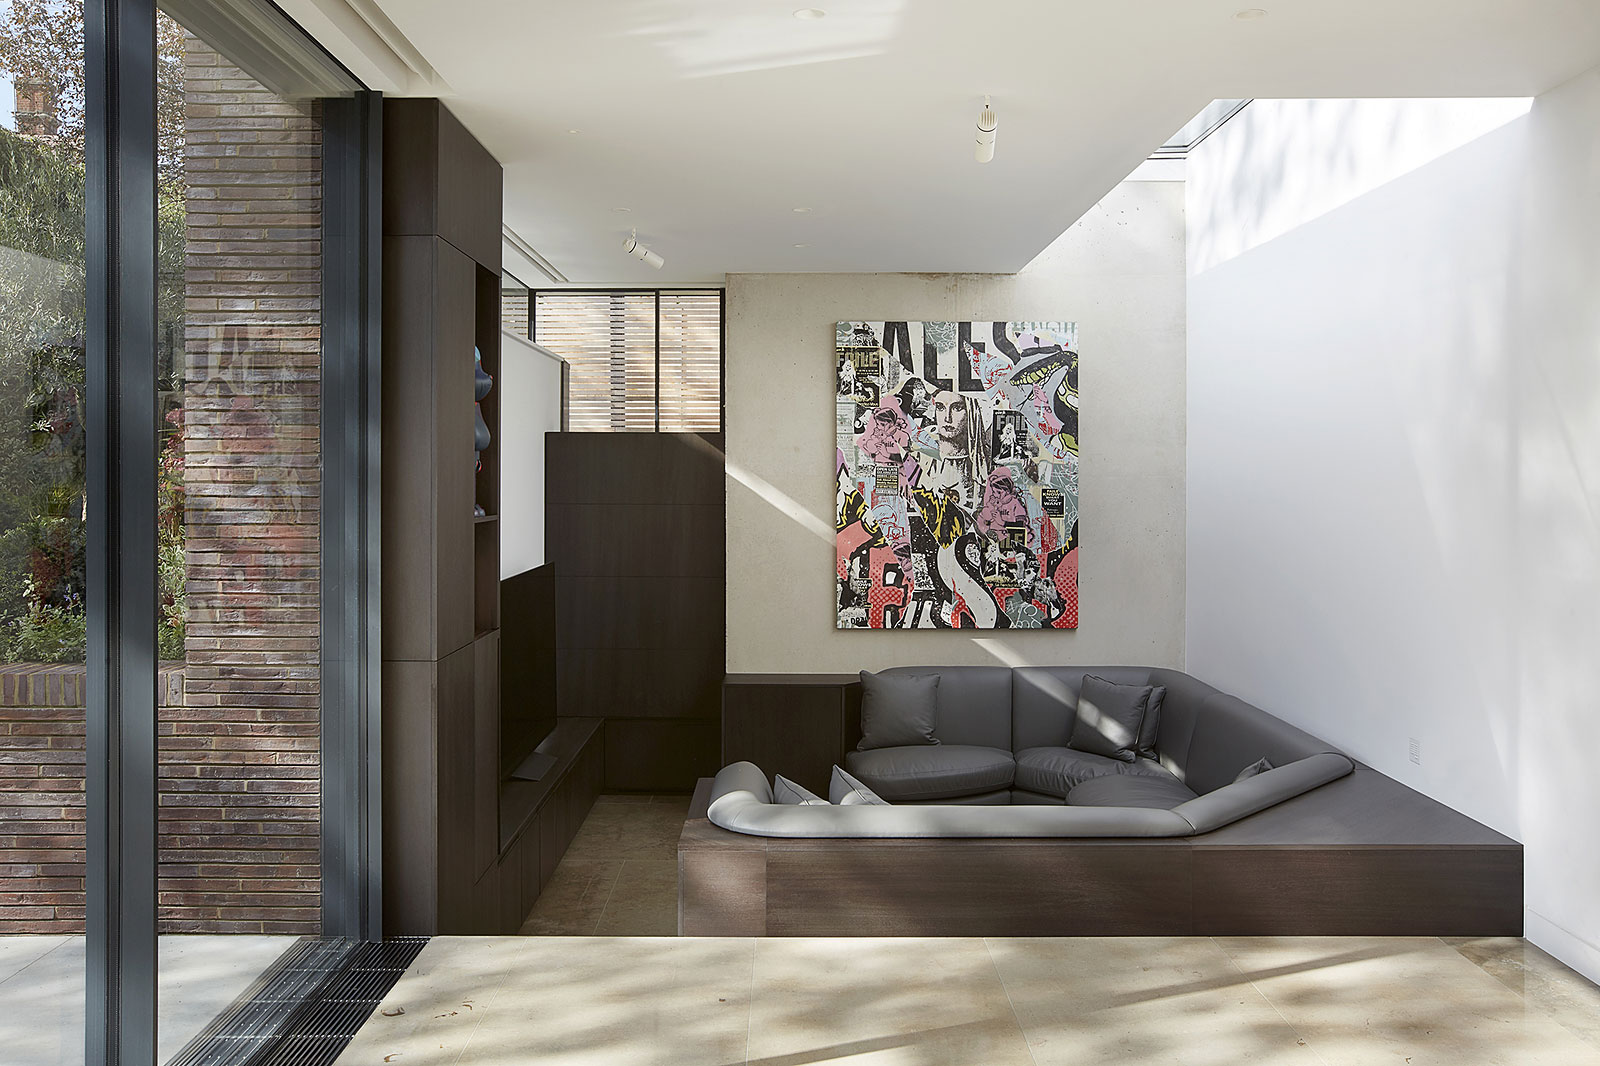 contemporary interior featuring fair faced concrete wall, sunken seating area and large windows